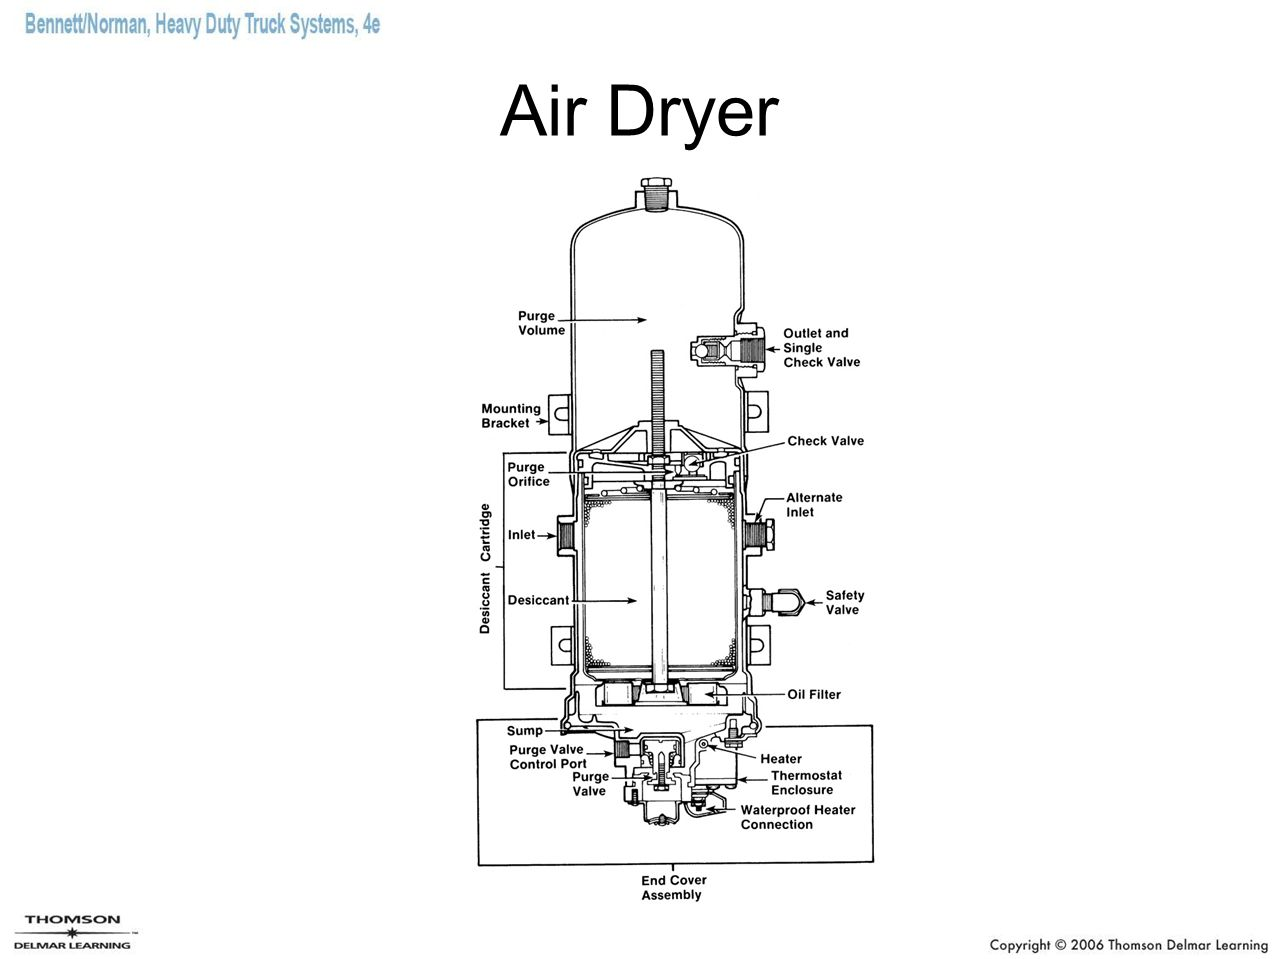 Air Dryer Diagram Wiring Diagrams For Conditioners Truck Data Schema Conditioner